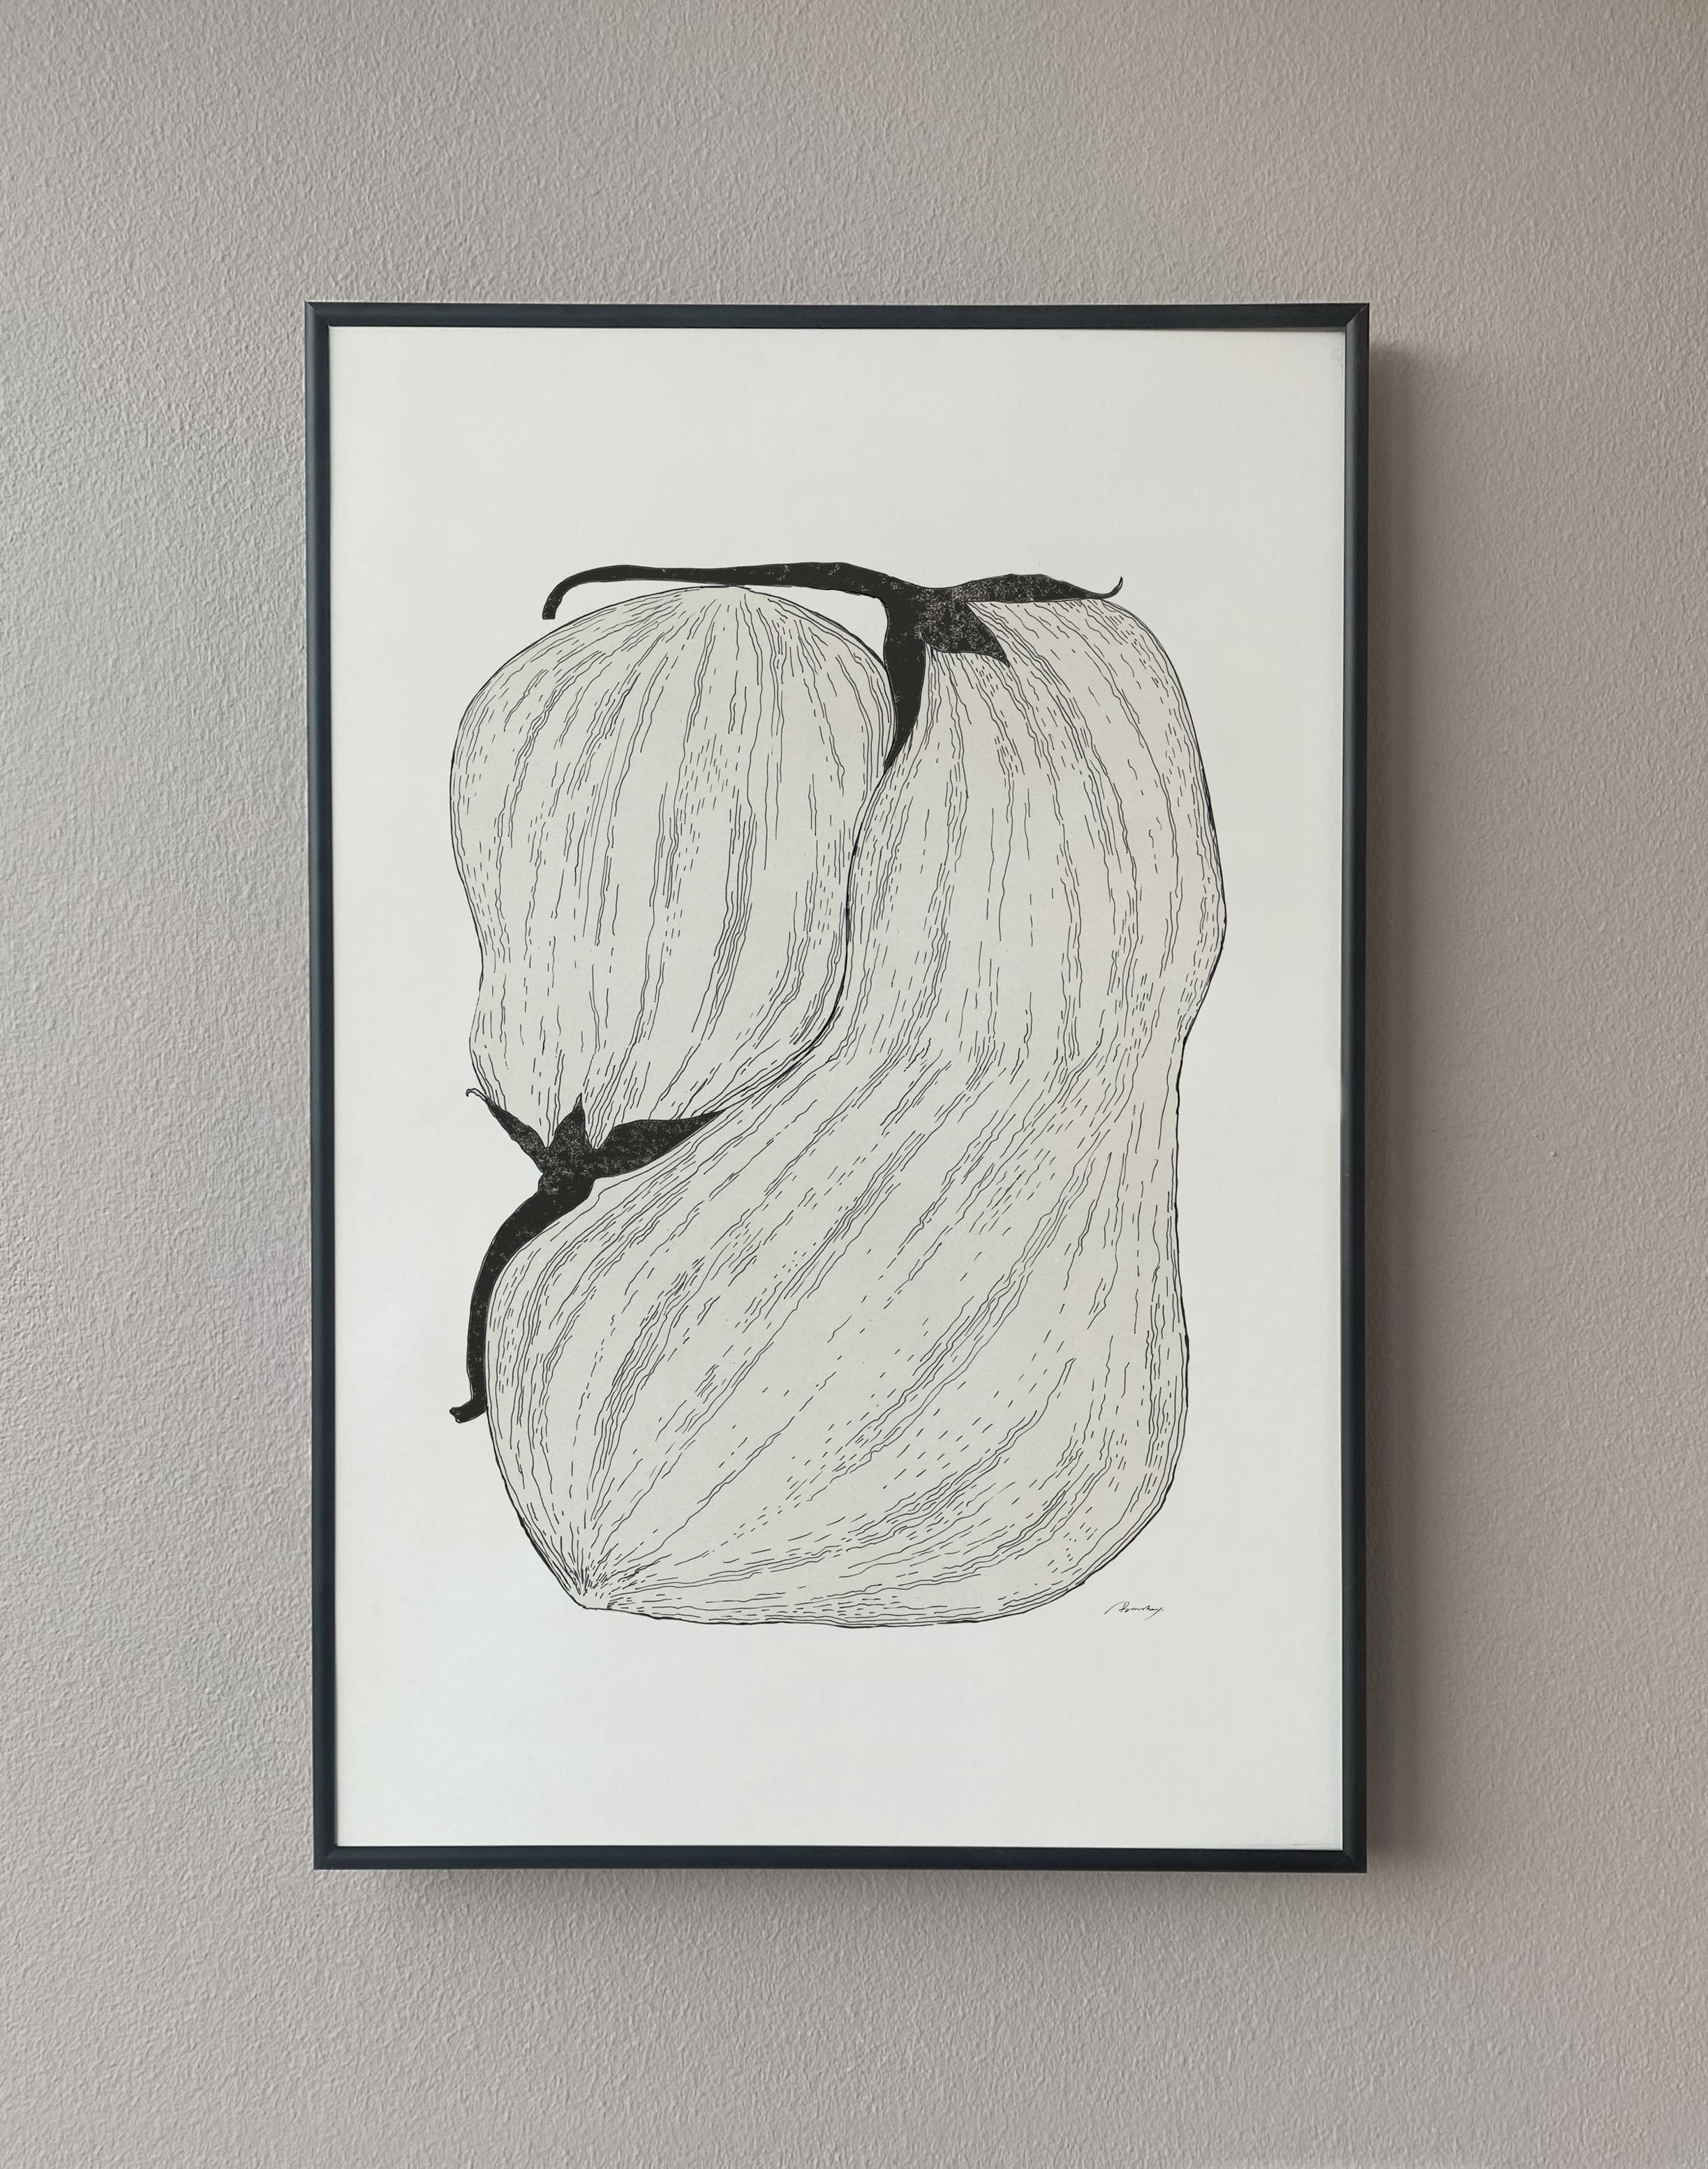 Aubergine illustration poster